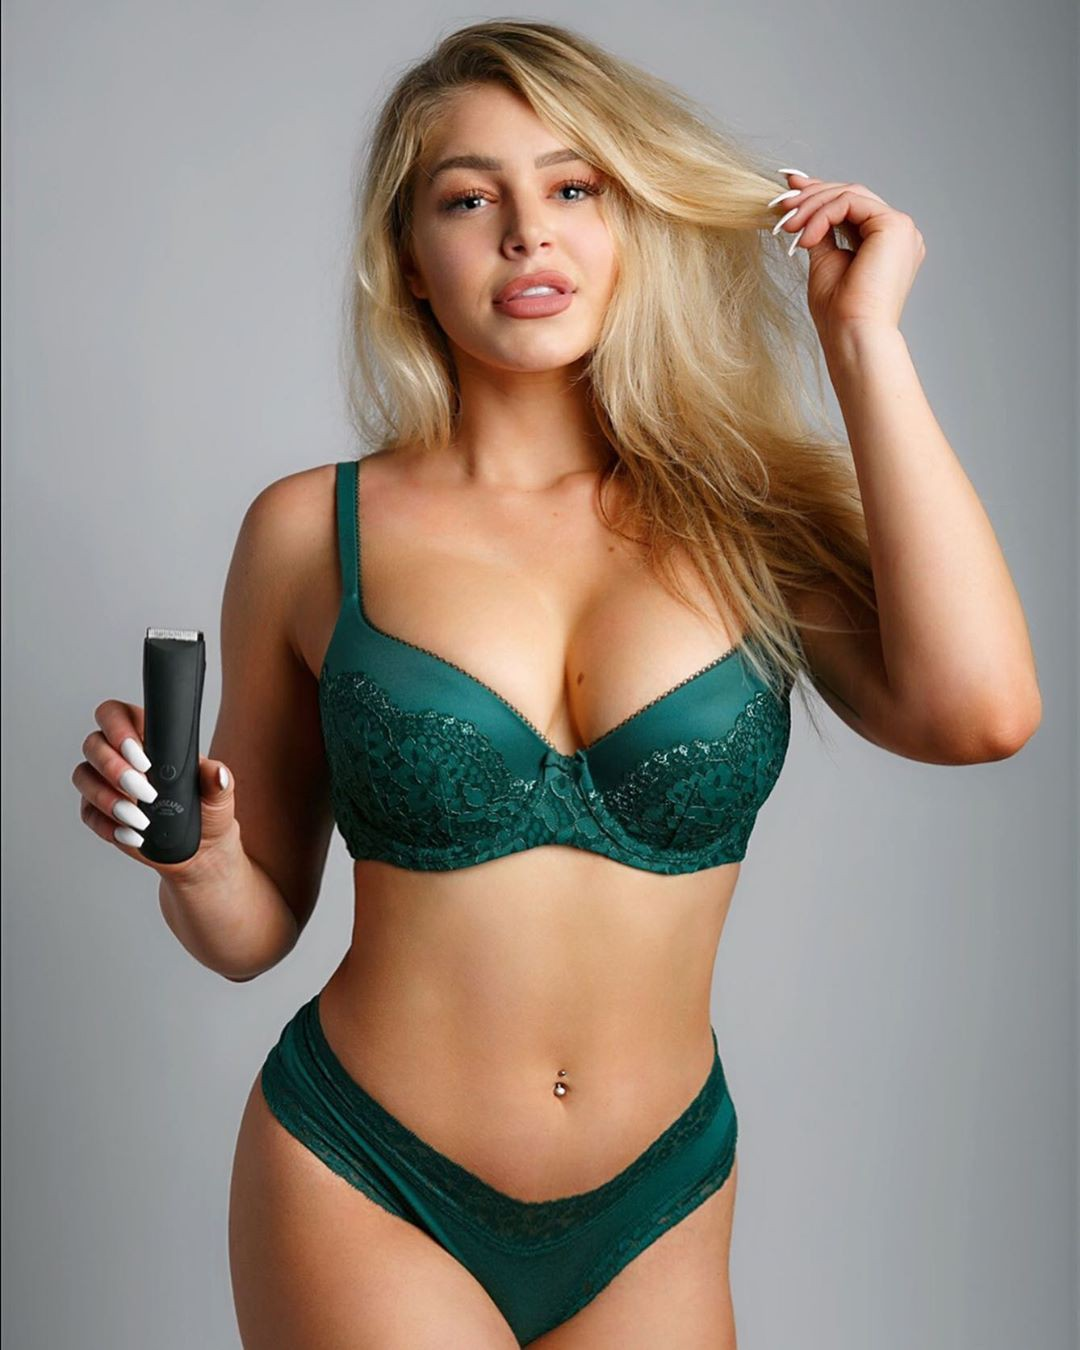 Nice ideas to protect courtney tailor, Photo shoot